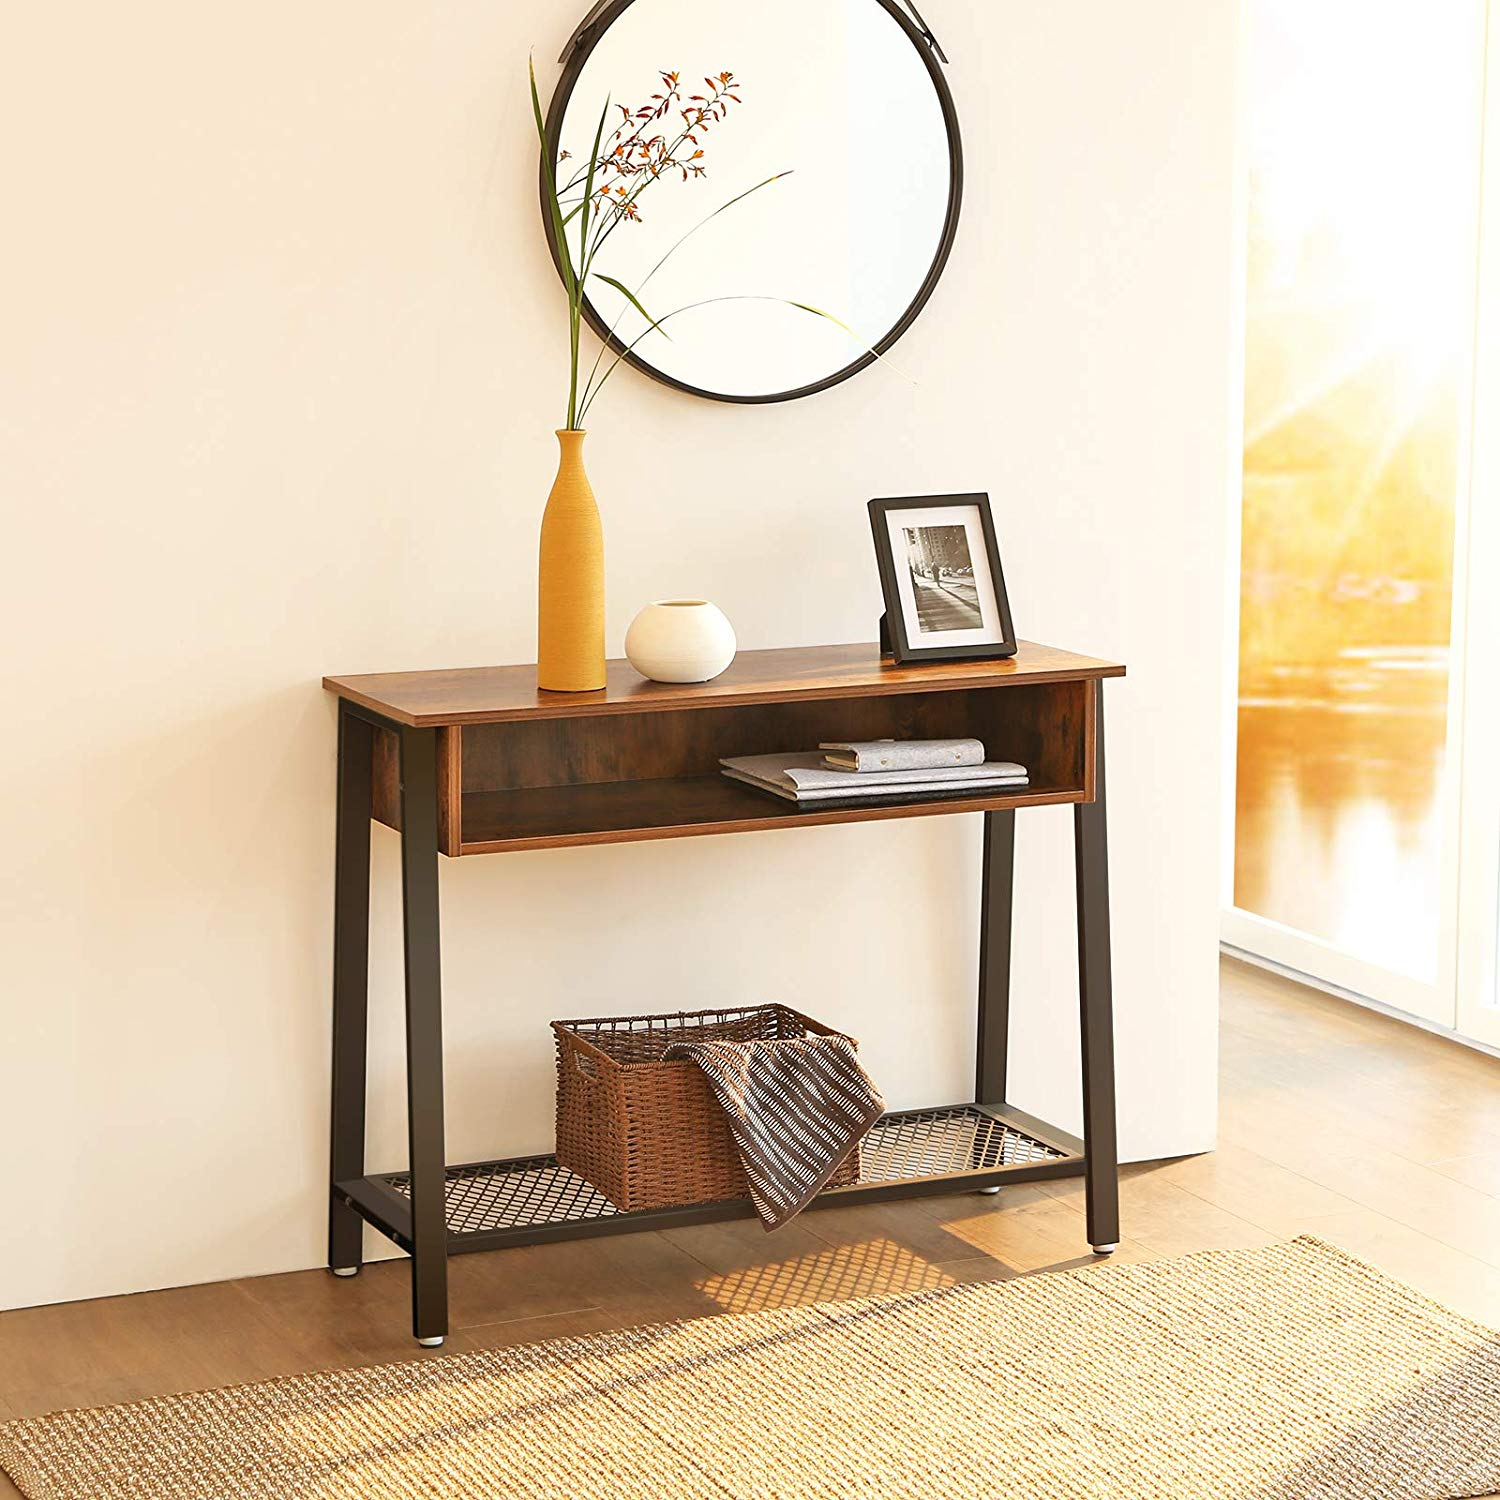 Enjoy fast, free nationwide shipping!  Owned by a husband and wife team of high-school music teachers, HawkinsWoodshop.com is your one stop shop for affordable furniture.  Shop HawkinsWoodshop.com for solid wood & metal modern, traditional, contemporary, industrial, custom, rustic, and farmhouse furniture including our Industrial Vintage Sofa Console Table.